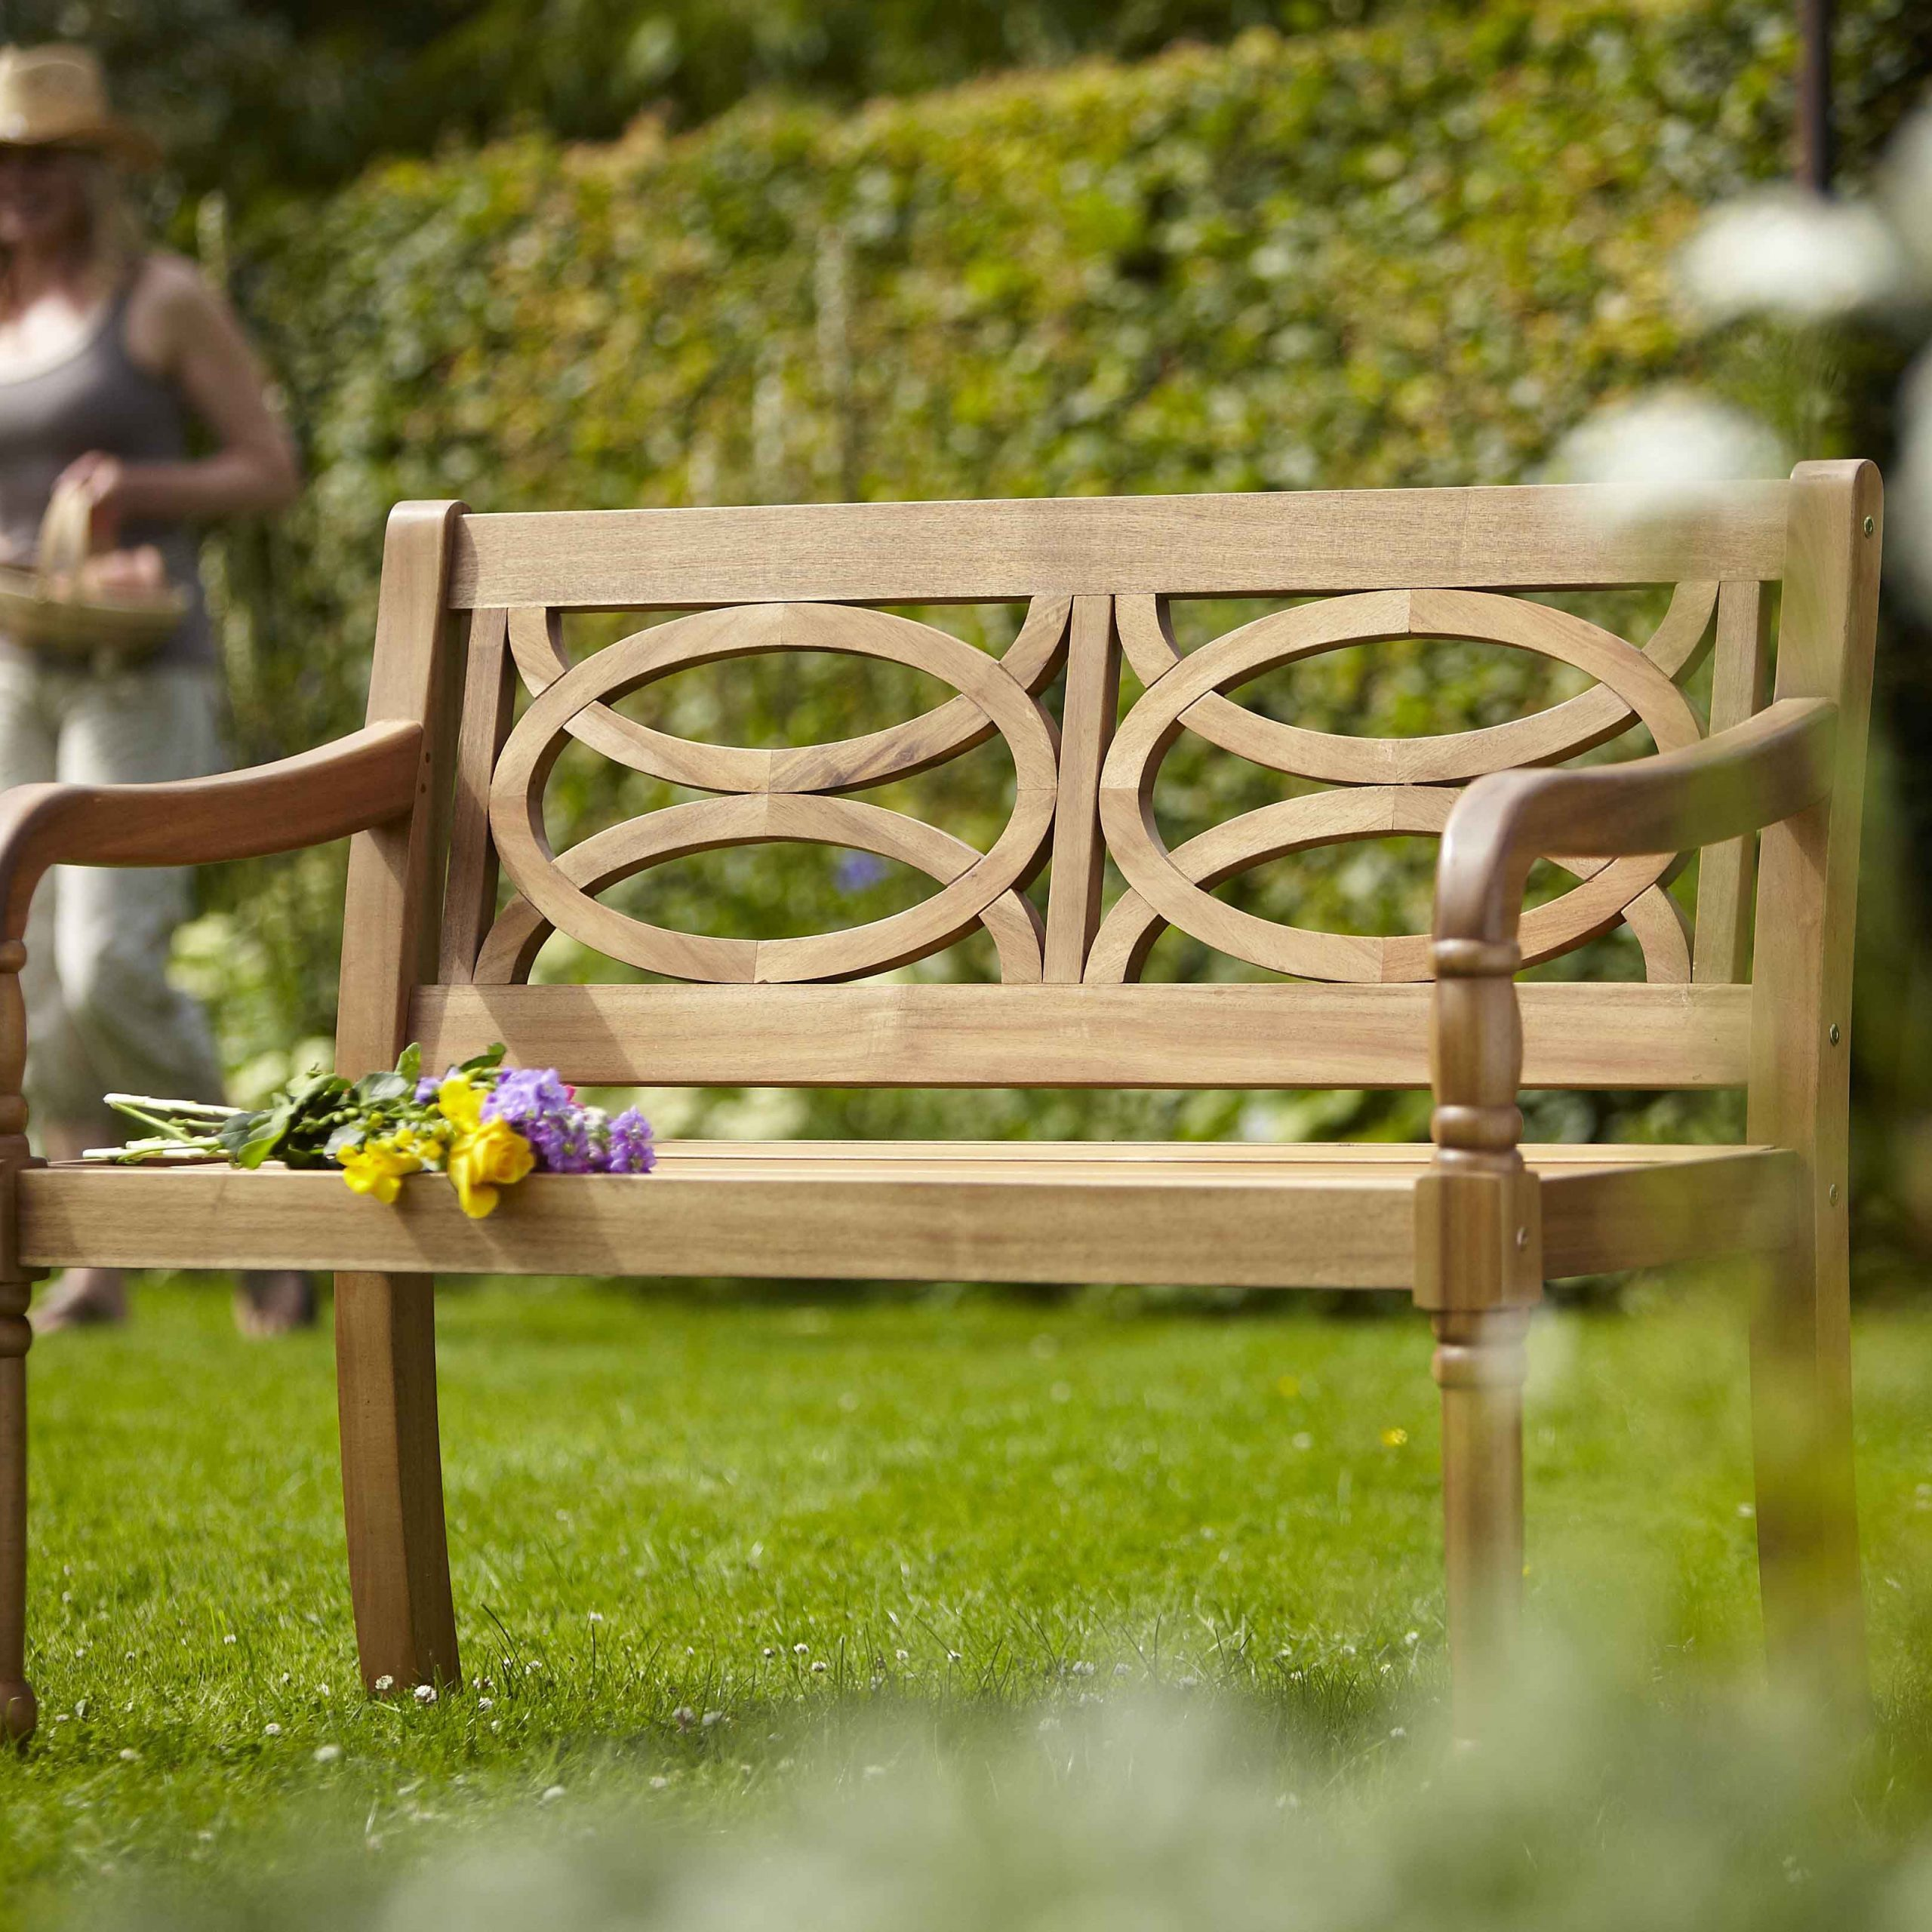 Cleobury 2 Seat Bench | Garden Benches For Sale, Wooden Intended For Amabel Patio Diamond Wooden Garden Benches (View 18 of 25)